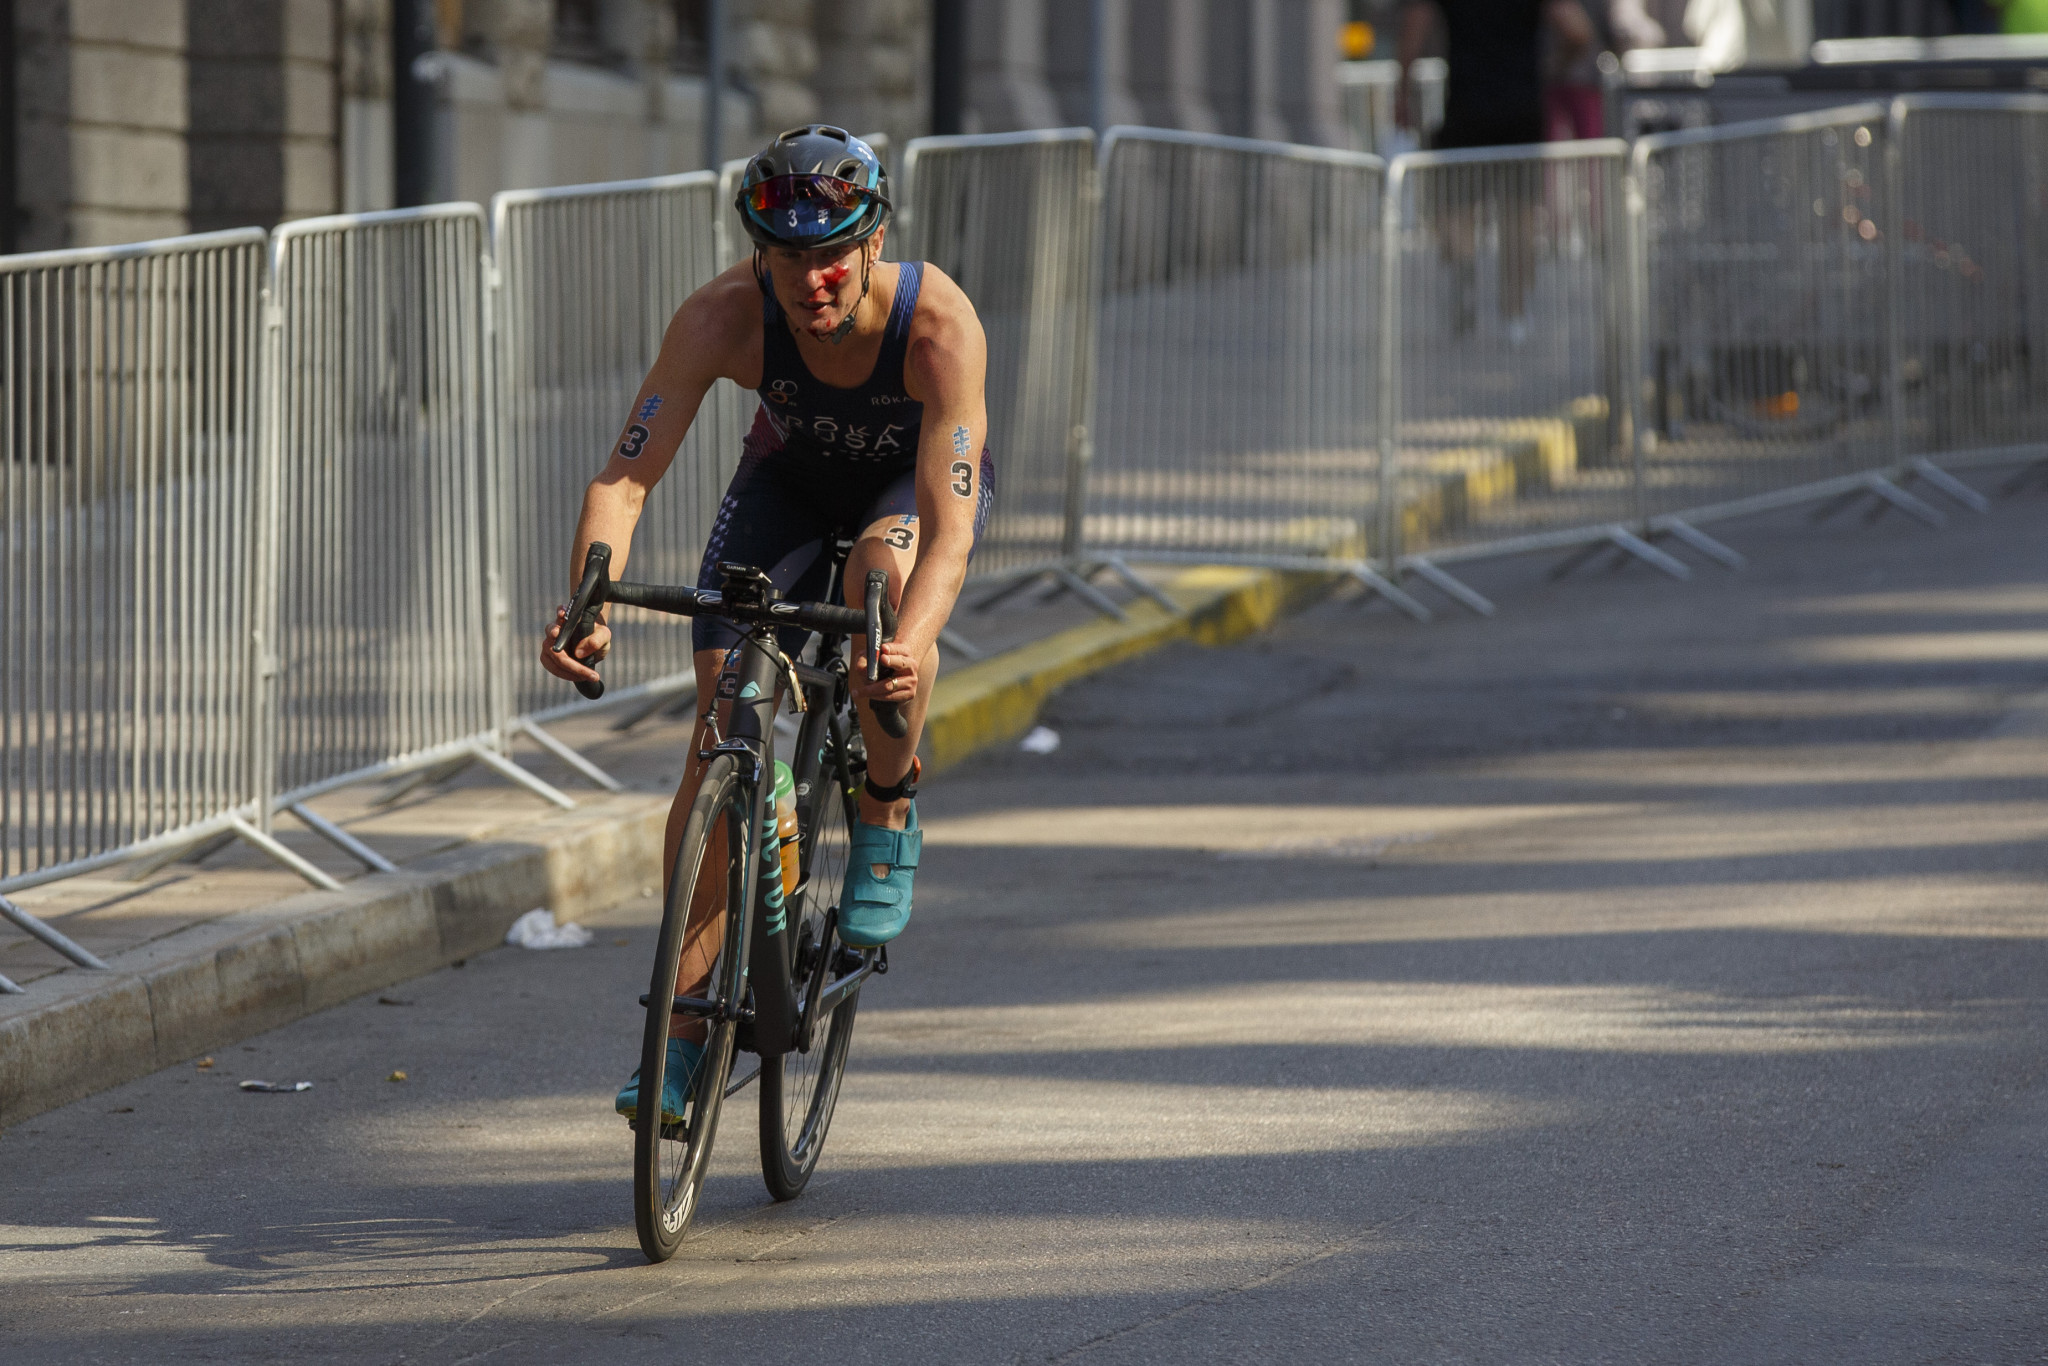 Triathlete Katie Zaferes has been nominated for the Team USA female athlete-of-the-month award ©Getty Images